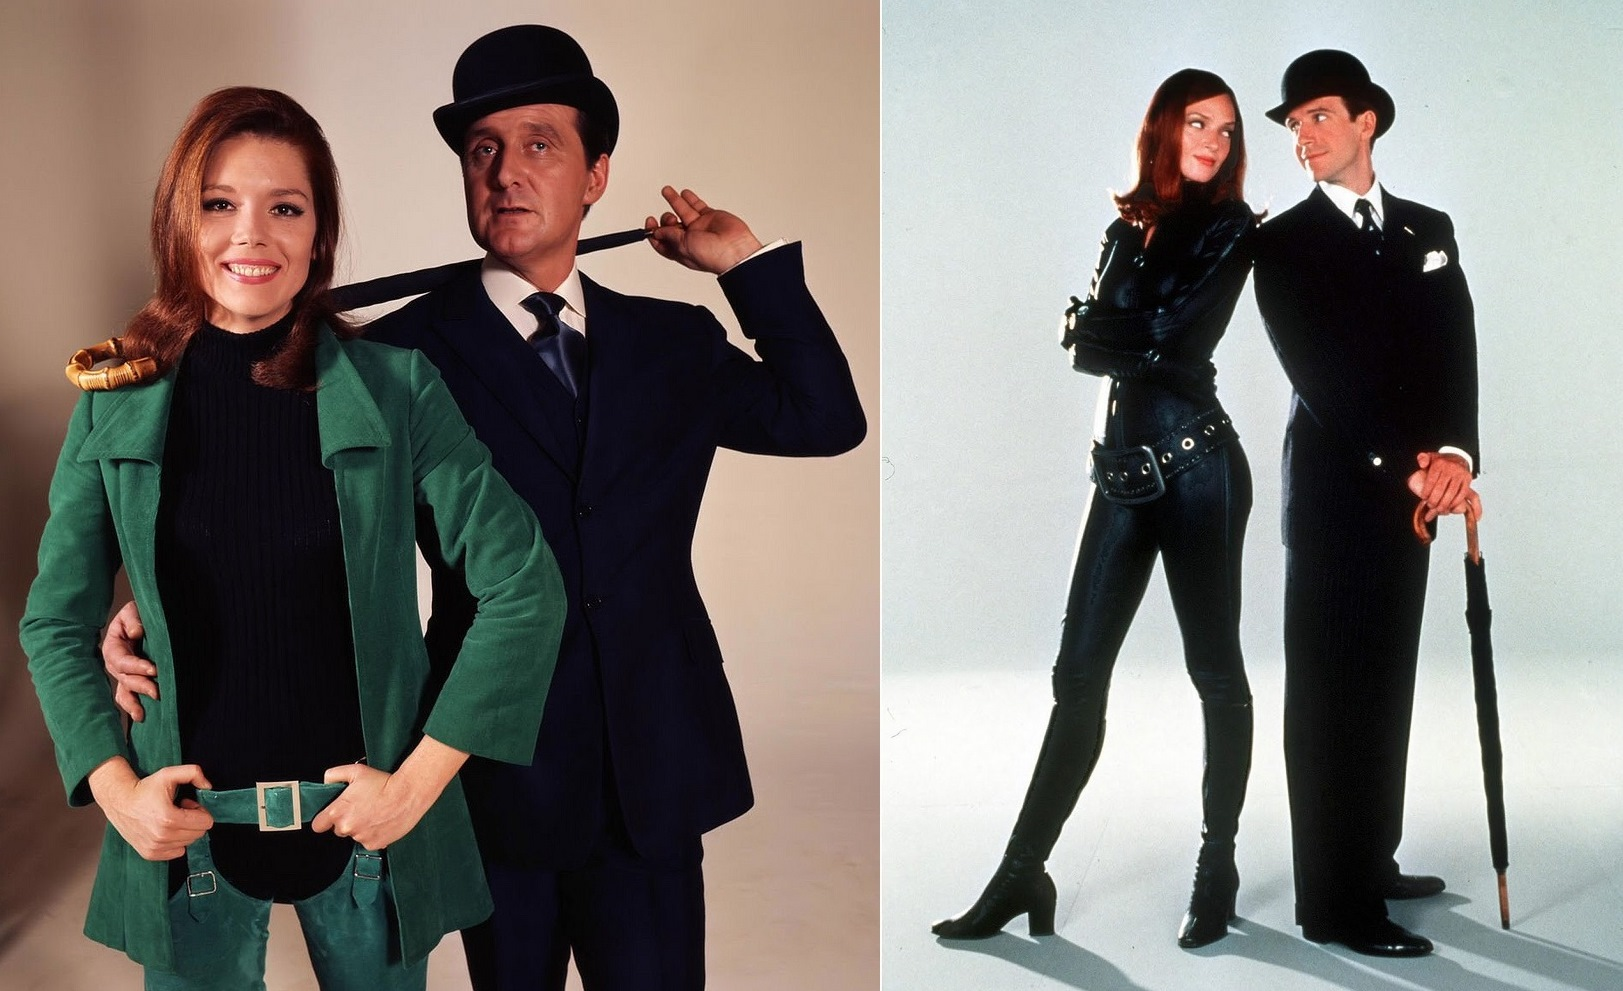 The original Steed and Mrs Peel (Patrick MacNee and Diana Rigg) vs the fim version's Steed and Mrs Peel (Ralph Fiennes and Uma Thurman)